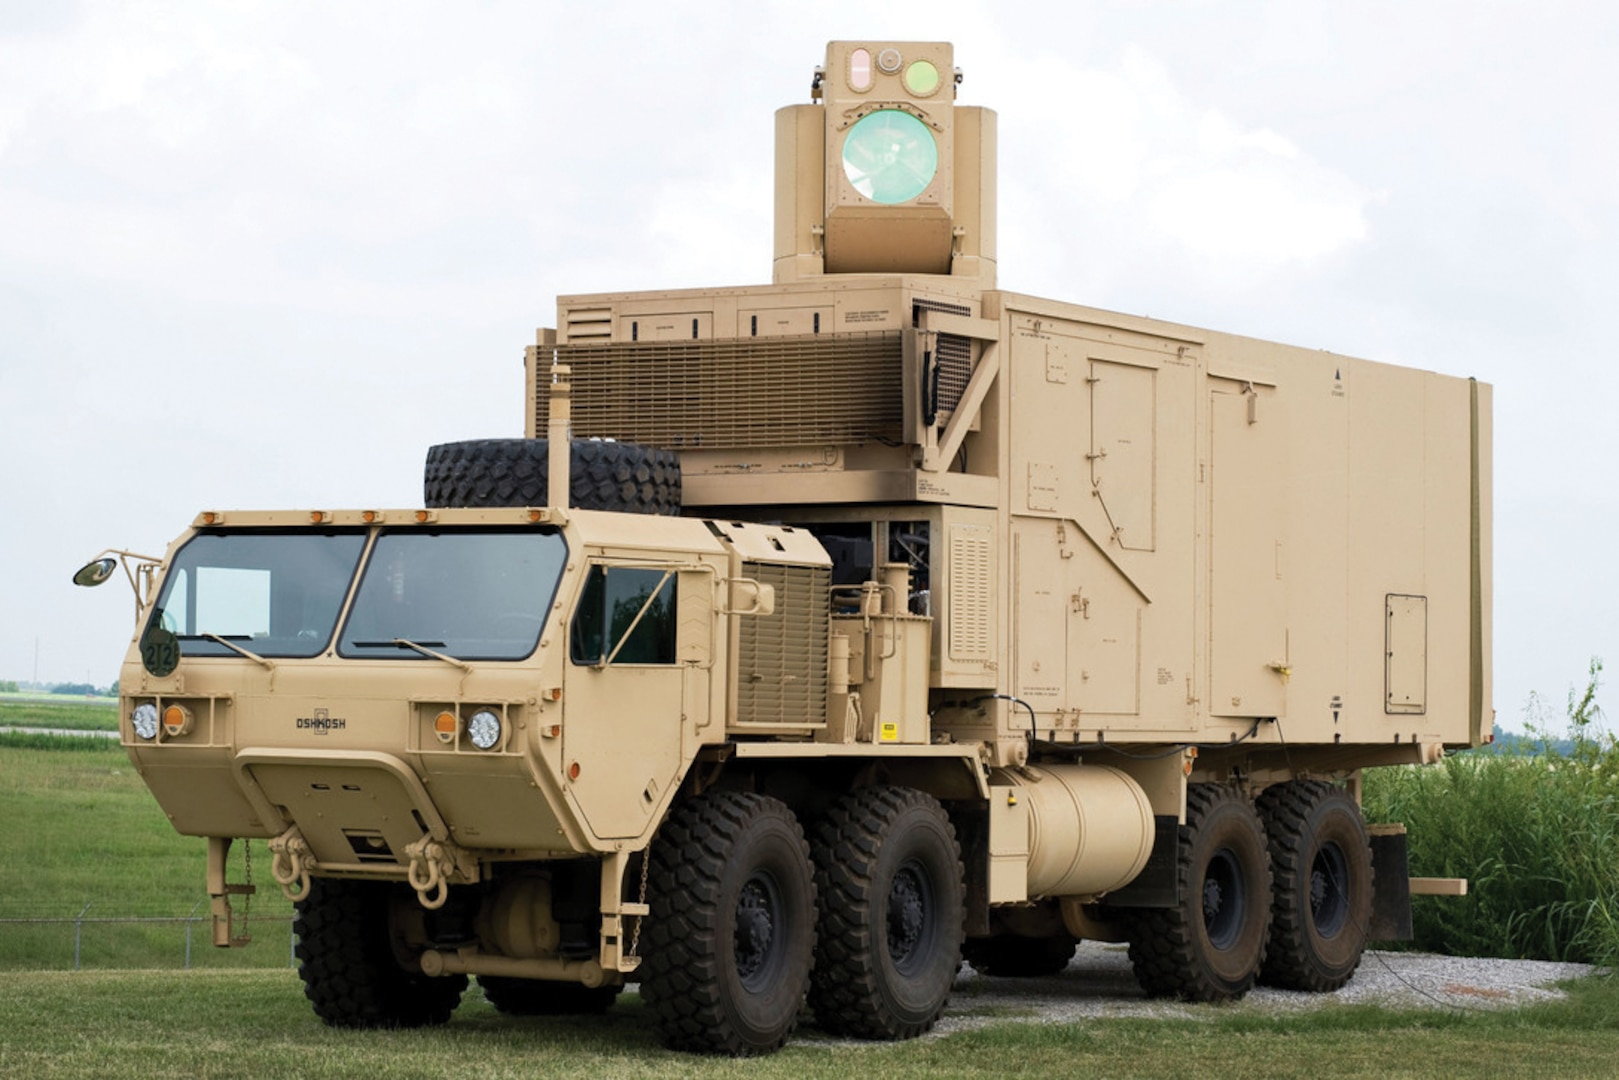 The High Energy Laser Mobile Demonstrator, or HEL MD, is the result of U.S. Army Space and Missile Defense Command research